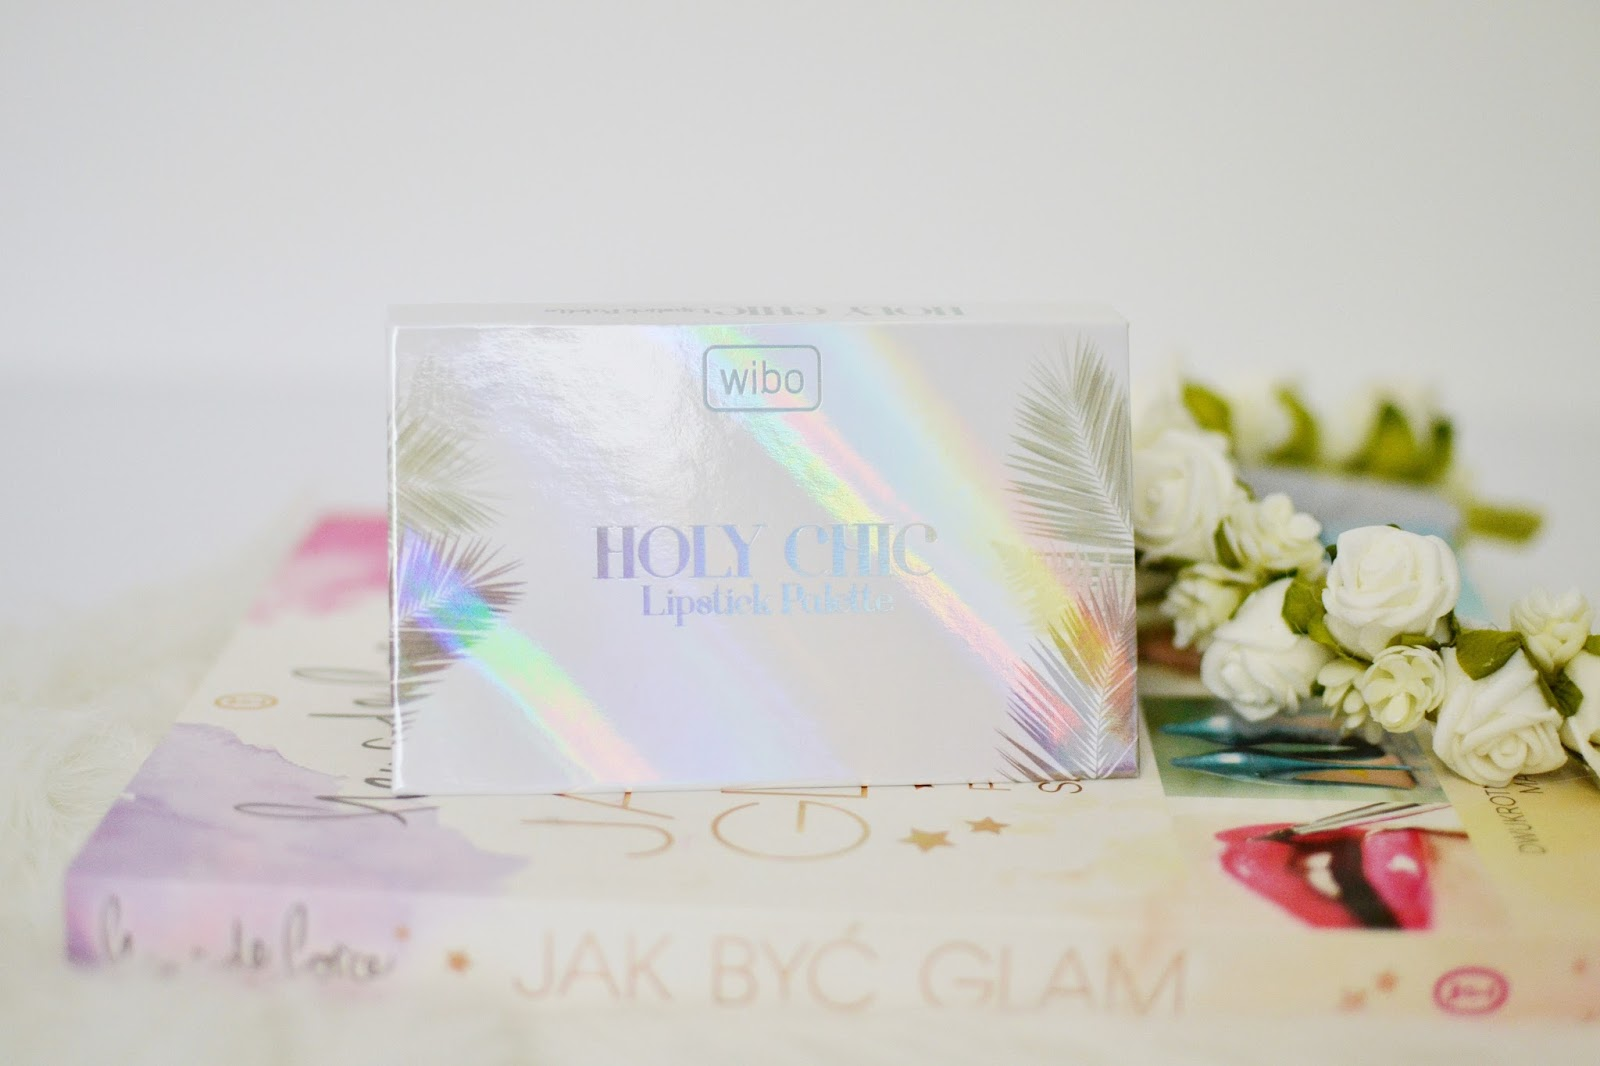 Wibo Rossmann Star Shine Holy Chic